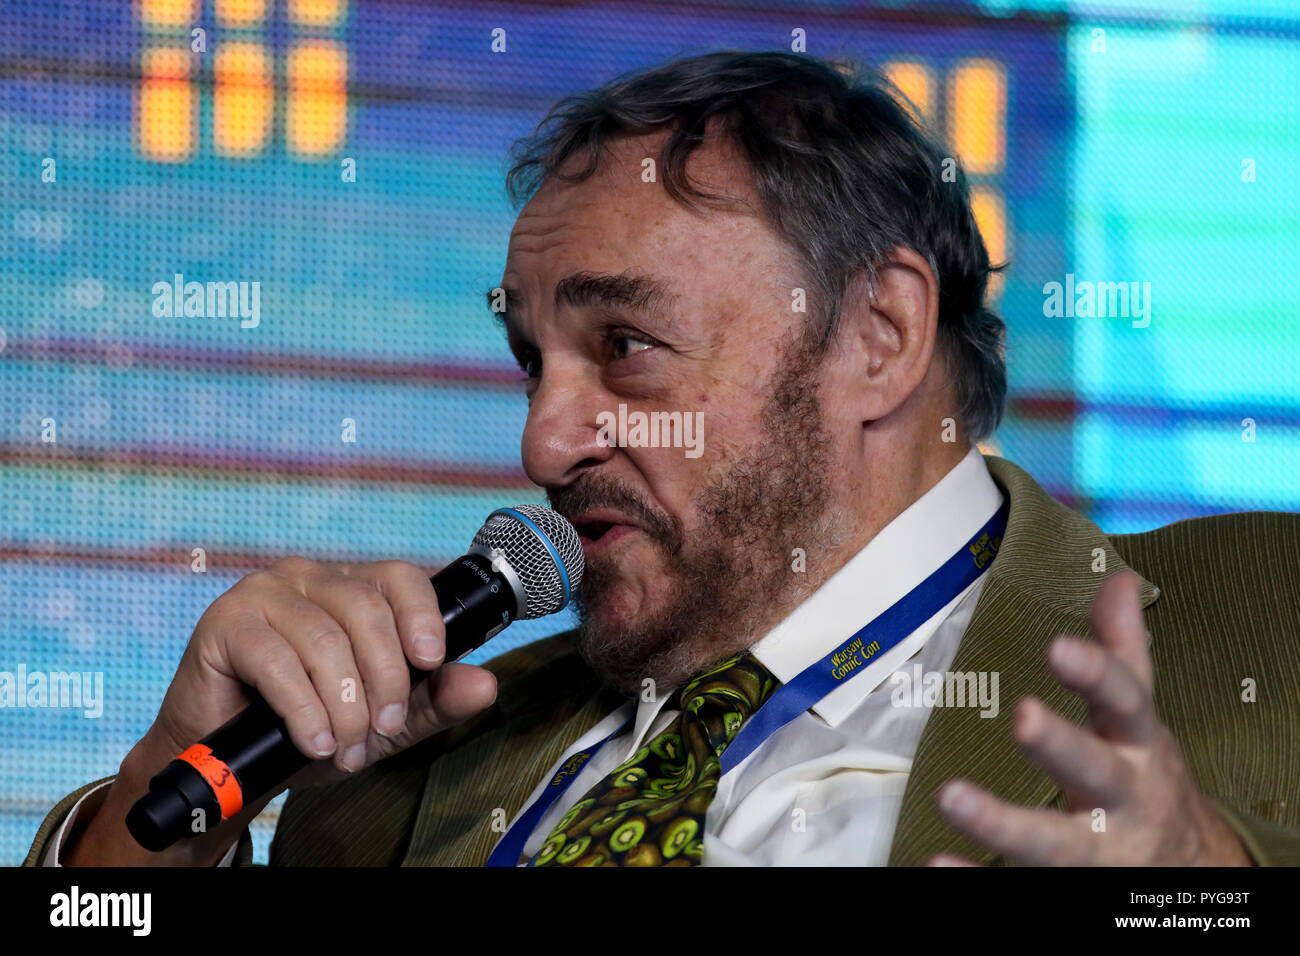 PTAK Warsaw Expo, Nadarzyn, Poland. October 27th, 2018. 4th edition of Warsaw Comic Con at  PTAK Warsaw Expo in Nadarzyn, Poland. Pictured: John Rhys-Davies  © Piotr Zajac/Alamy Live News - Stock Image